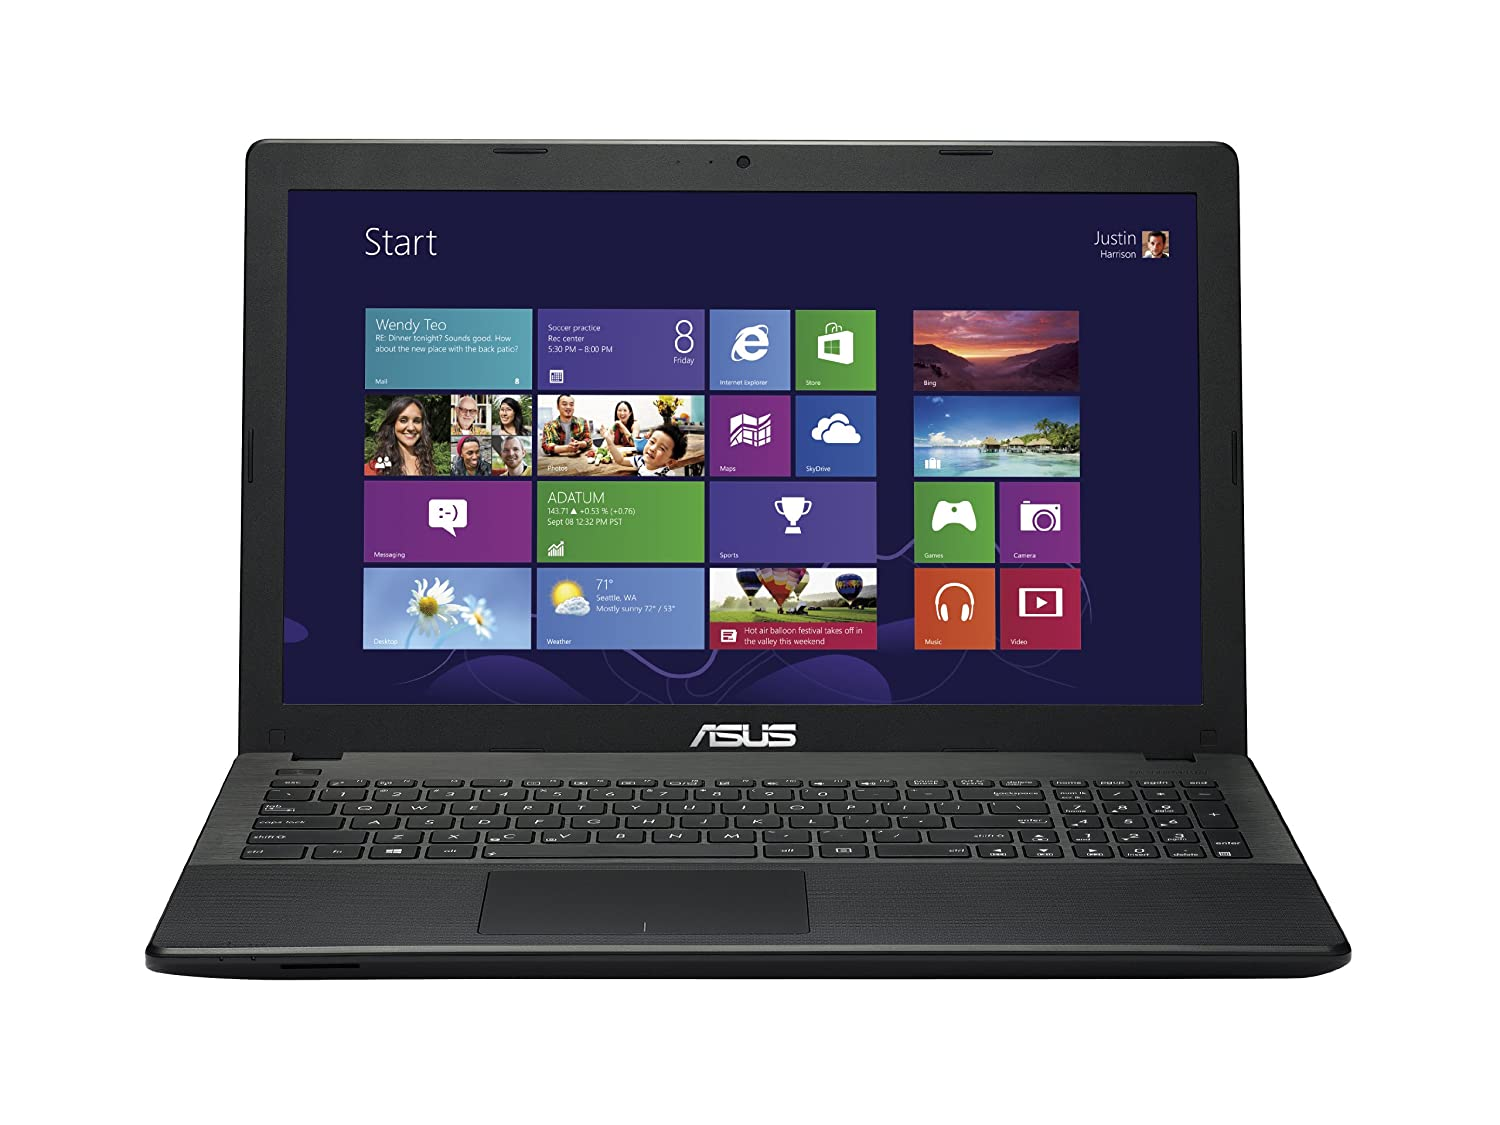 Asus X551ca Sx130h 156 Inch Hd Led Notebook Intel Core I3 3217u Hp Classic Desktop Wireless Keyboard Mouse Hitam 180ghz 4gb Ddr3 750gb Hdd Dvd Dl Wi Fi Webcam Hdmi Usb 30 Integrated Graphics